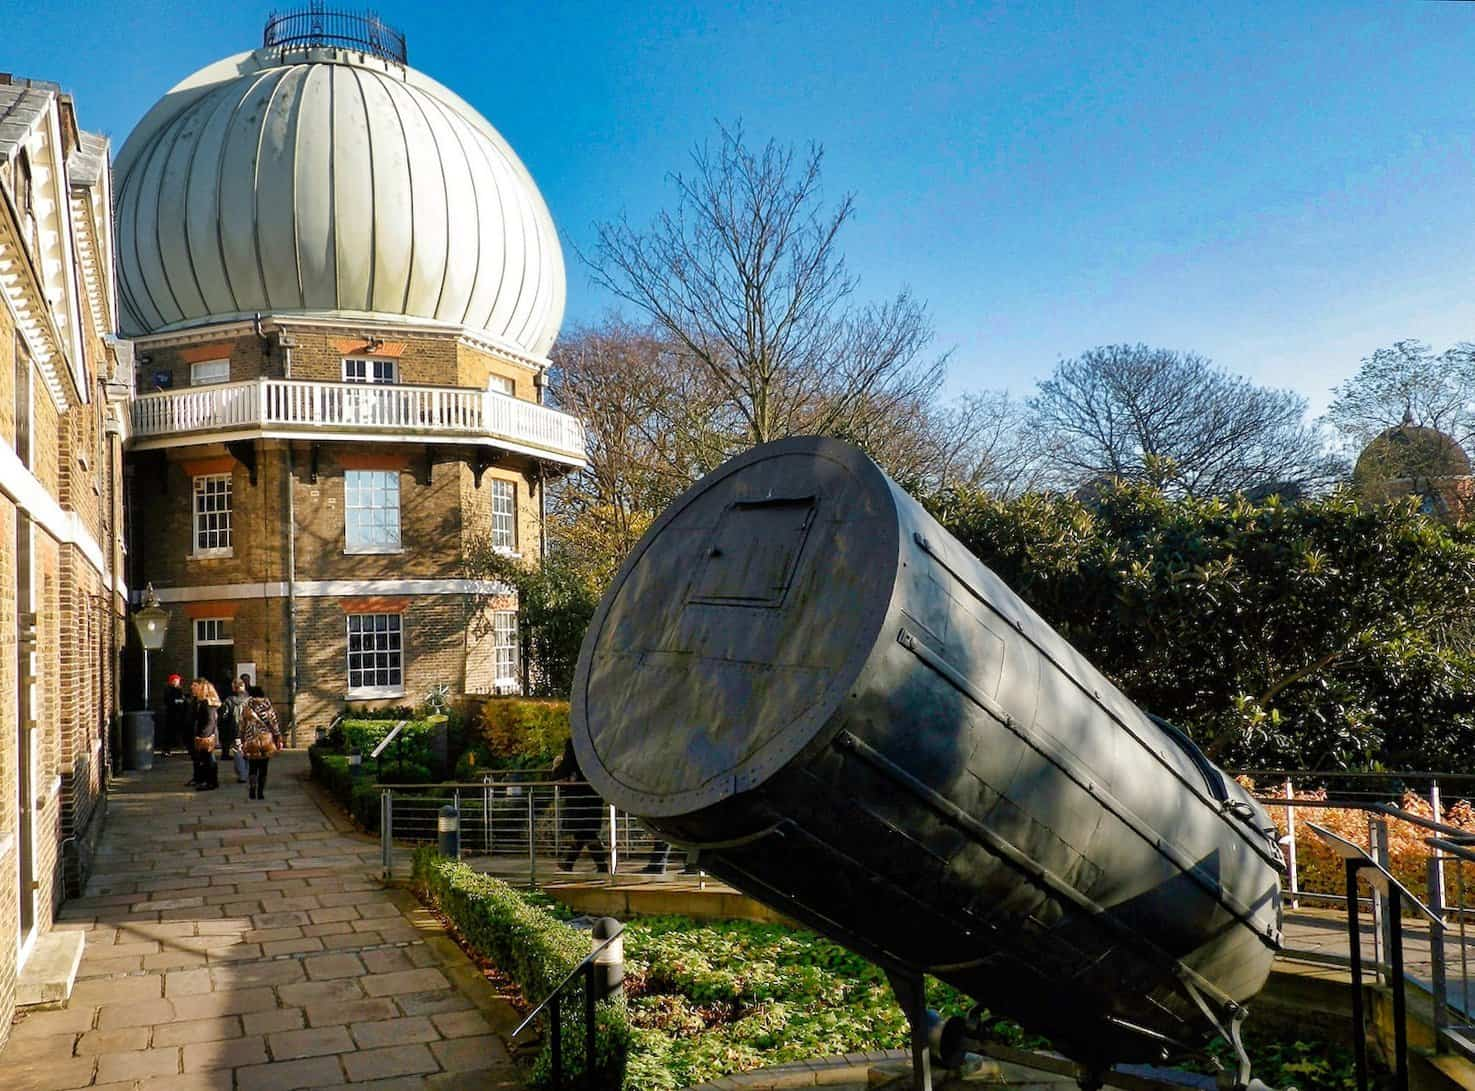 Royal Observatory Greenwich - Herschel Telescope - todd.vision via Flickr